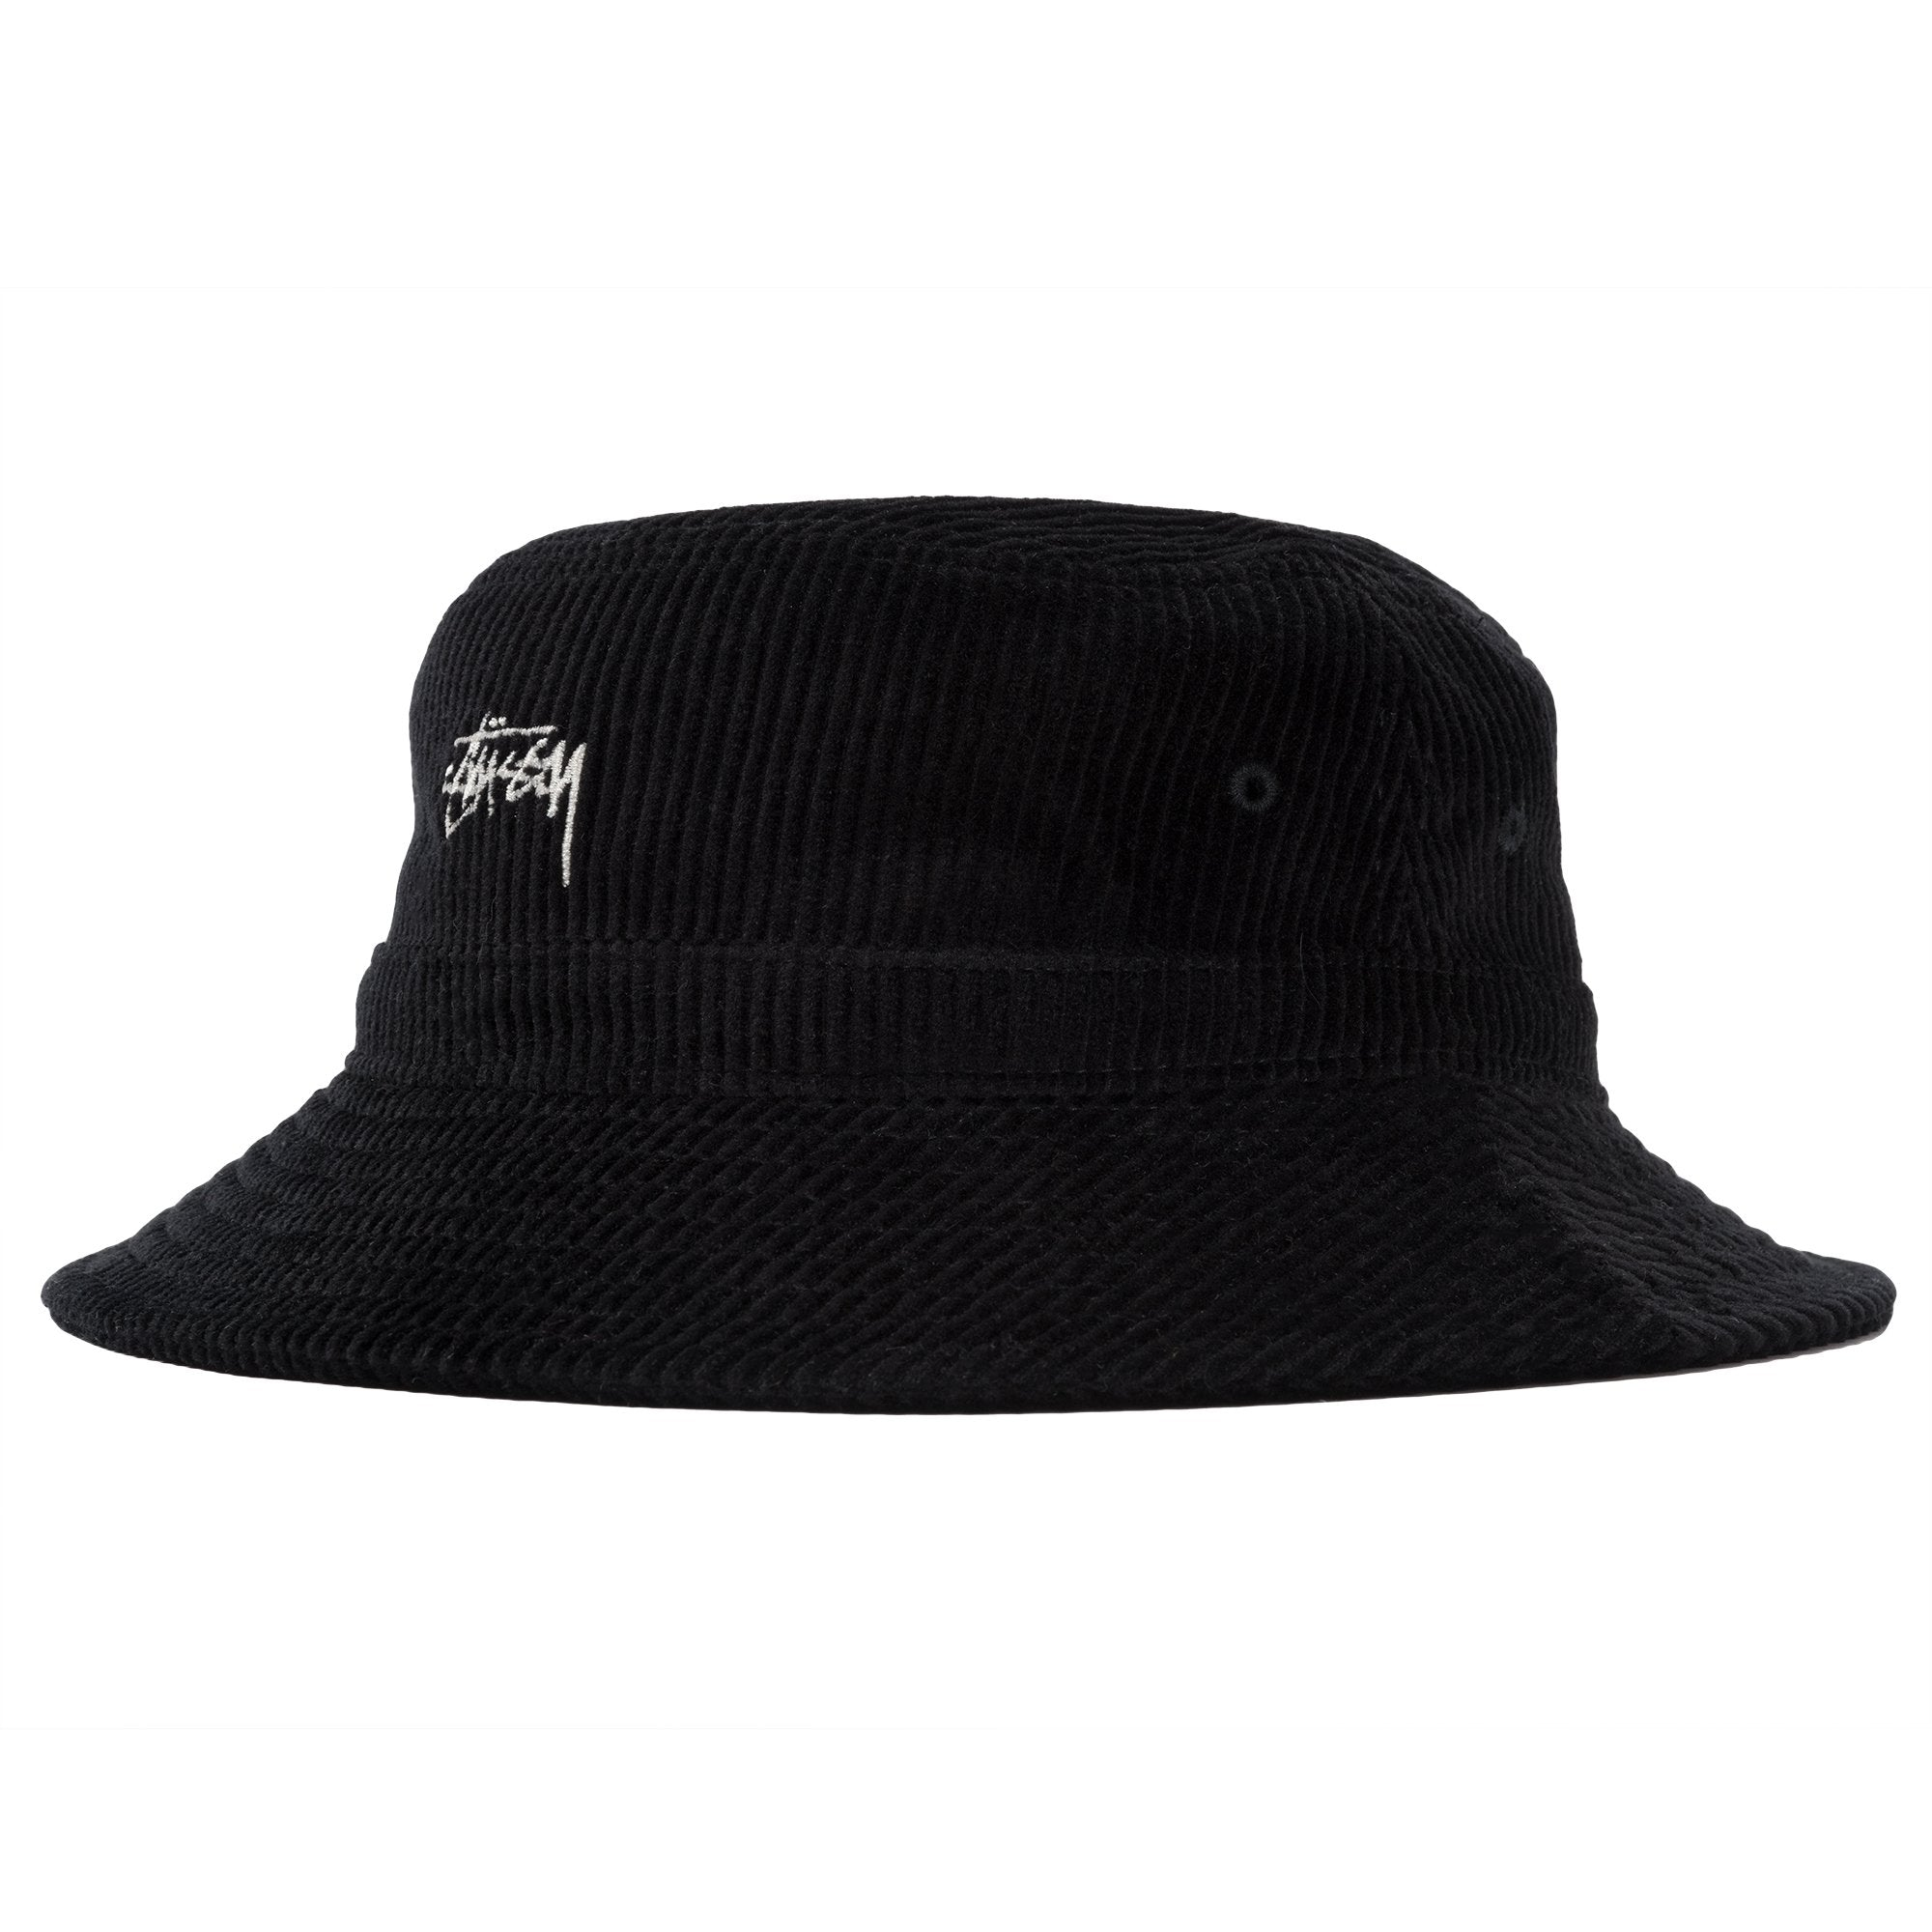 f312816b3 Stussy Hats, Bucket Hats, Caps and Beanies for Men and Women ...